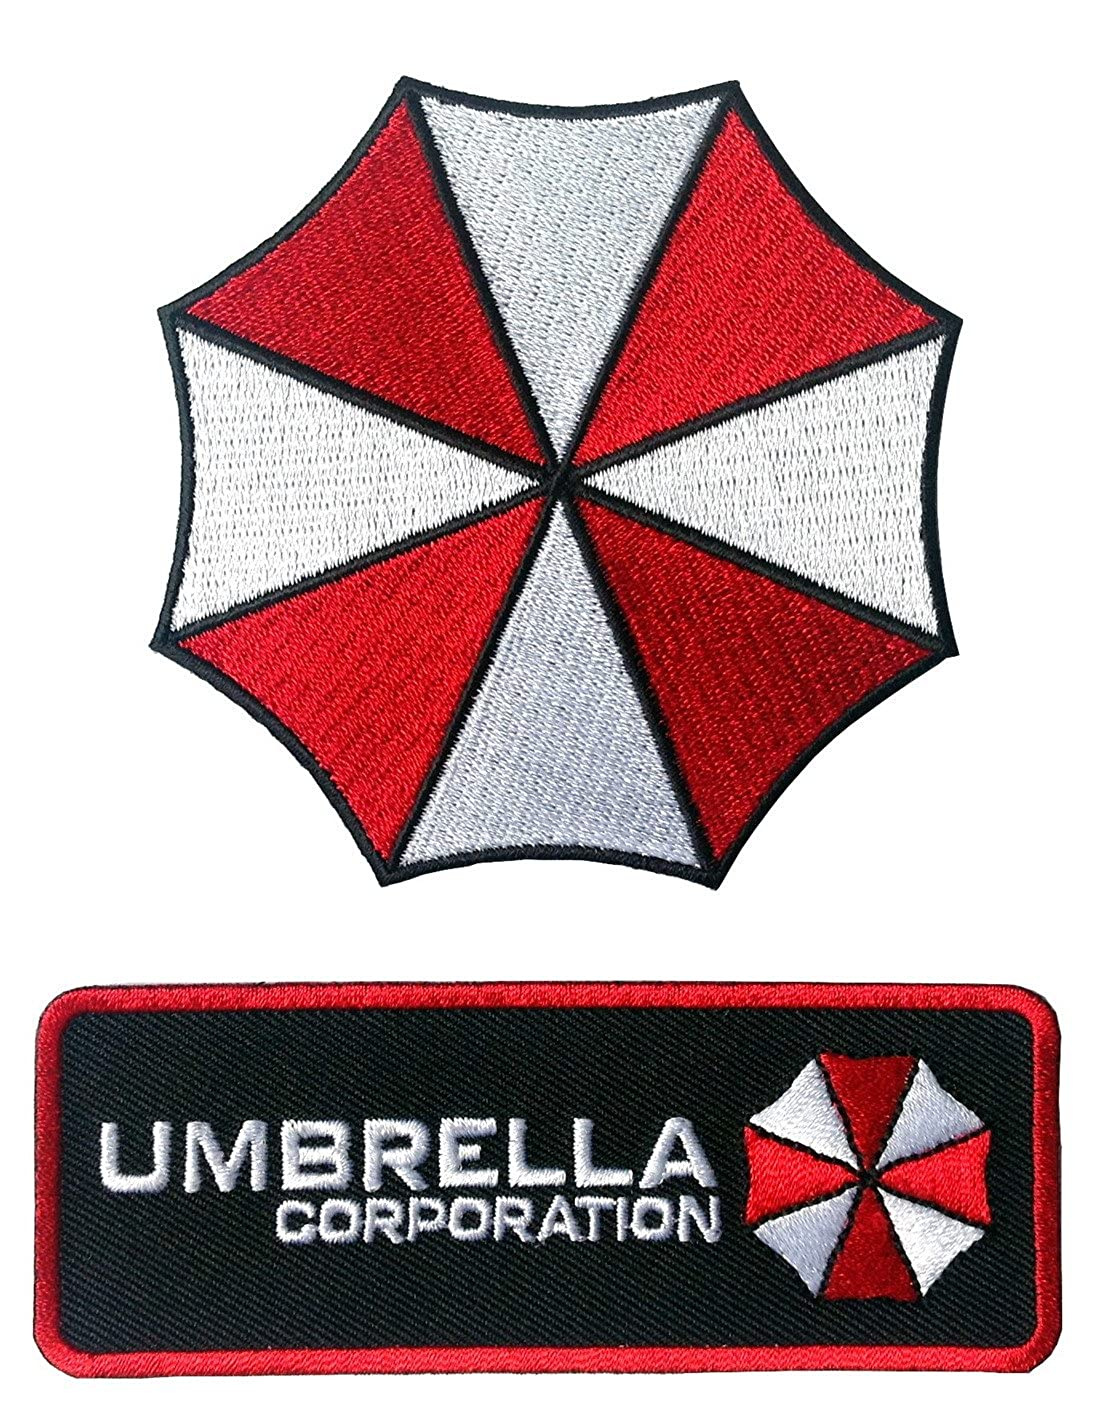 Resident Evil Umbrella Corporation Embroidered 2 Patches Amazon